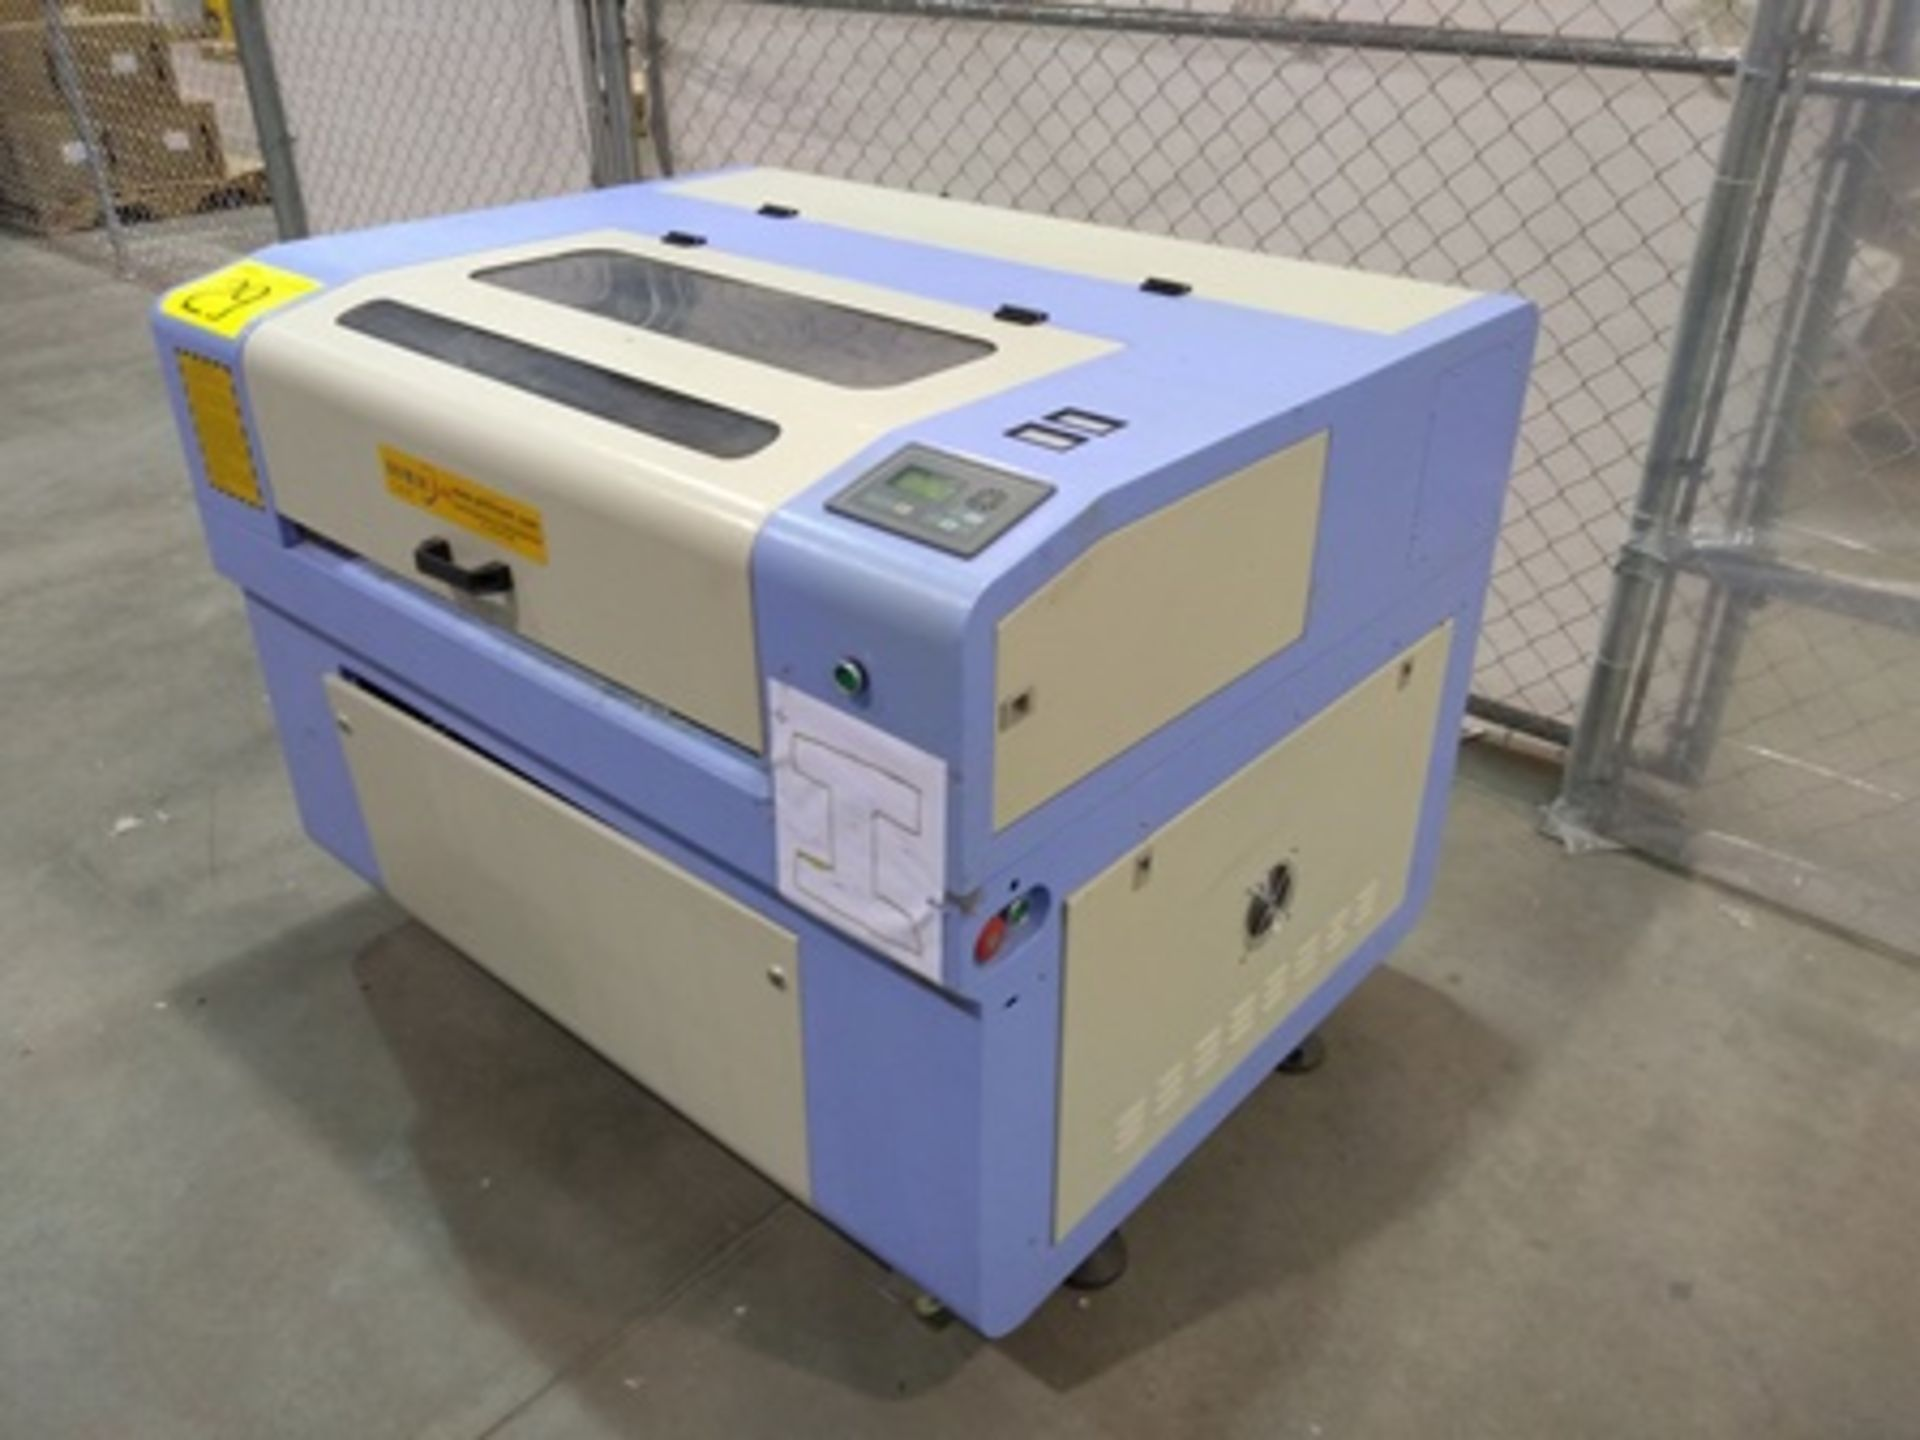 Lot 29 - 2017 Phillican CO2 laser engraver and cutting machine, model 6090. Laser power: 80x2w, 3.2Kw, series